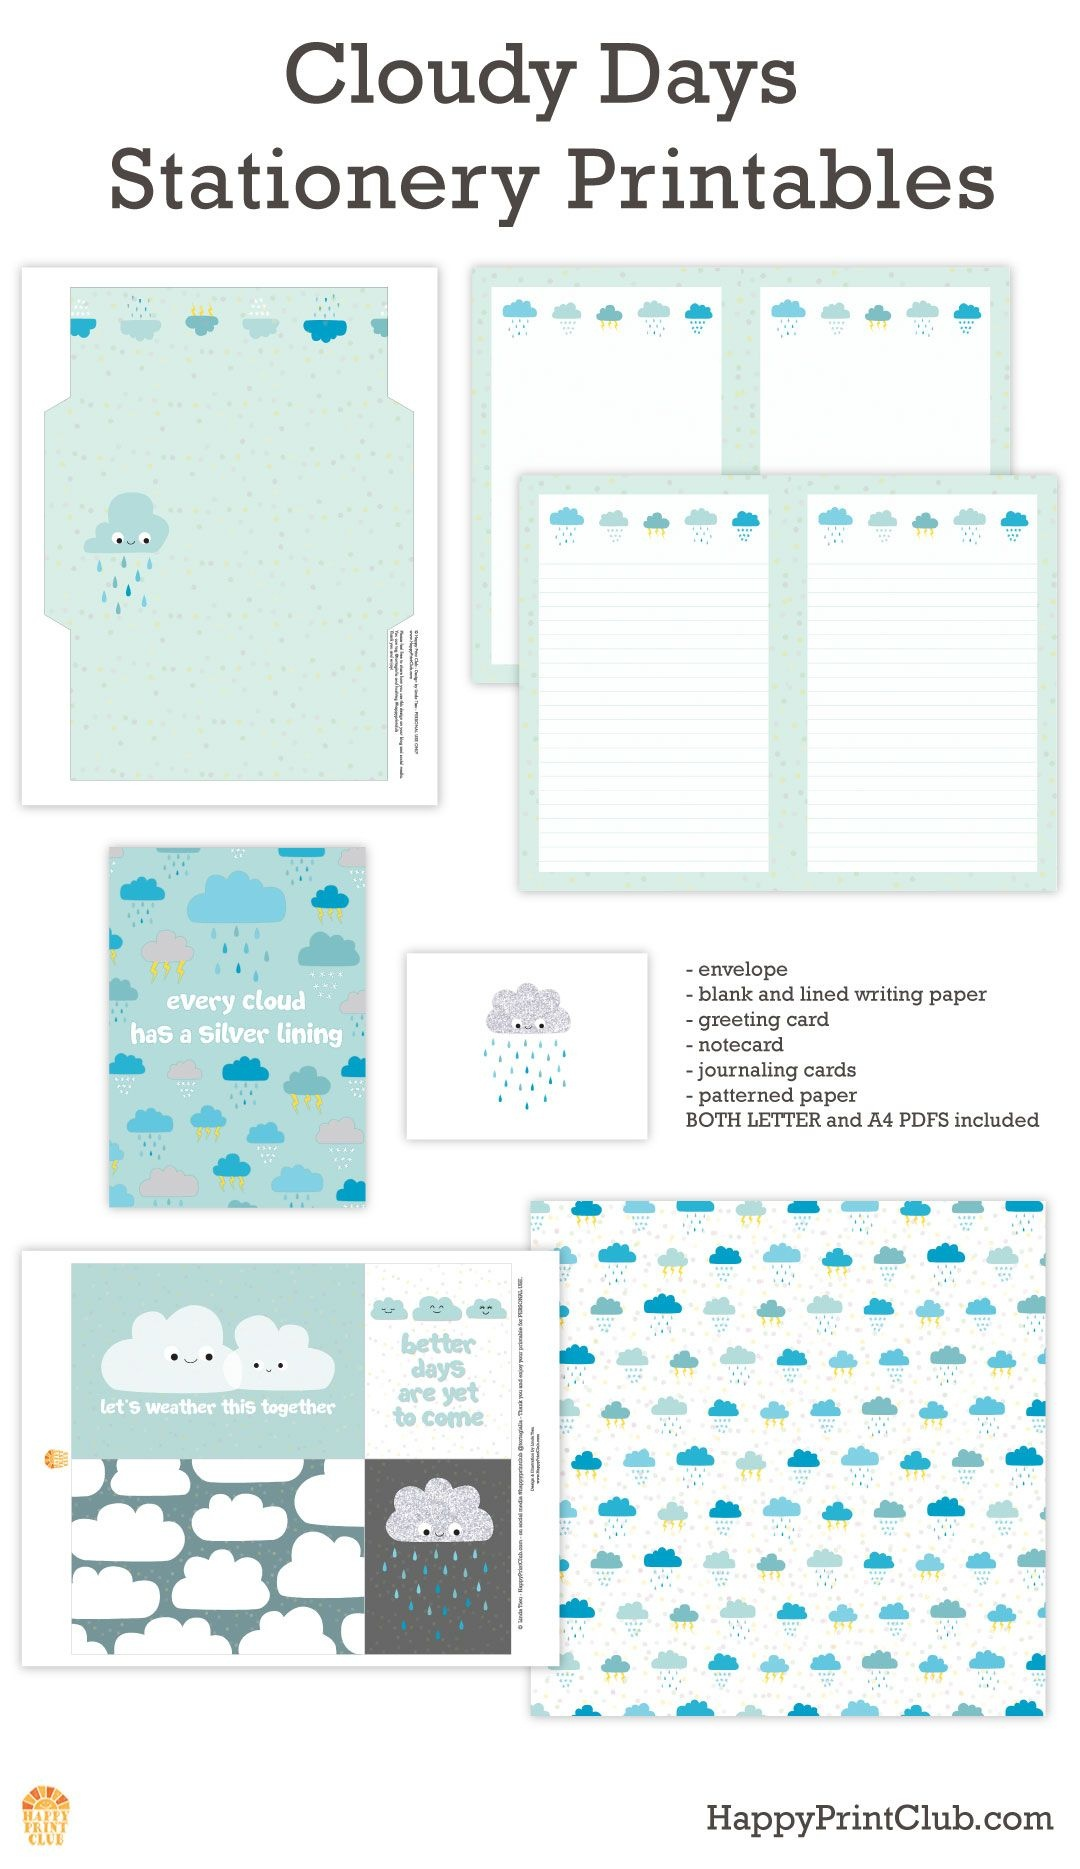 Cloudy Days Stationery Printables On Happyprintclub | Cute - Free Printable Cloud Stationery